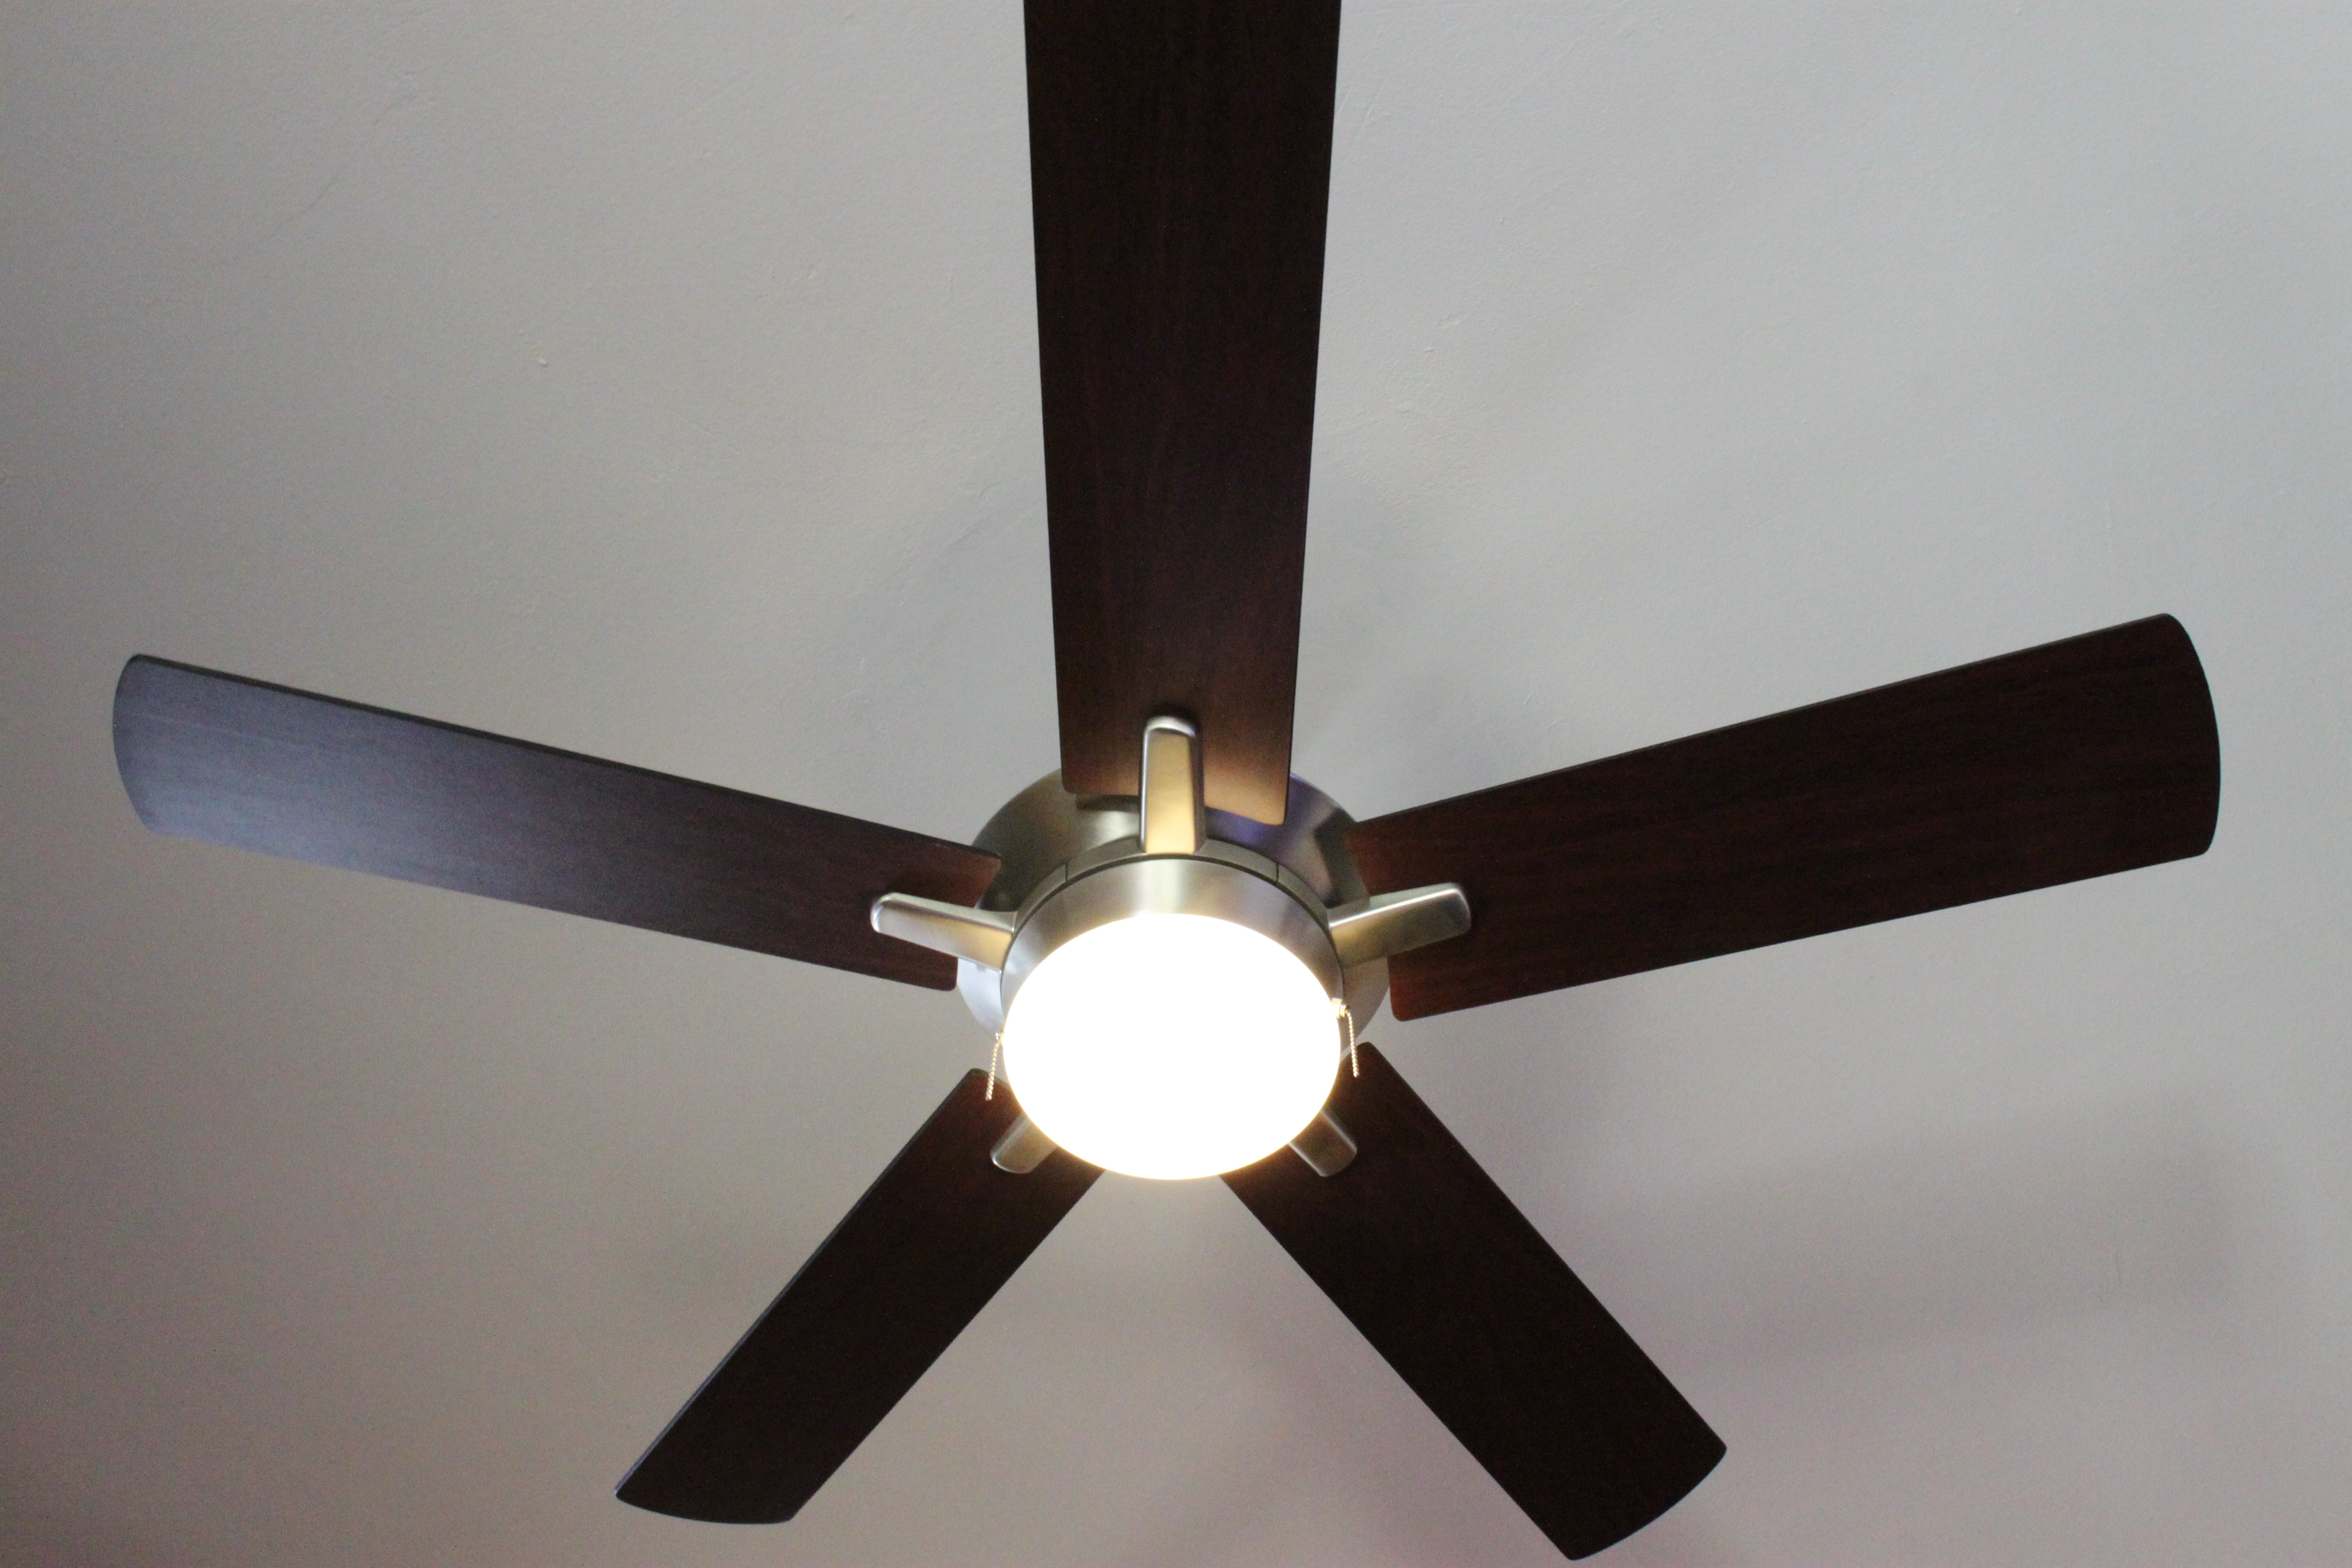 15 best ideas of outdoor ceiling fan lights with remote control outdoor ceiling fans with lights and remote 19 photos within outdoor ceiling fan lights with aloadofball Image collections